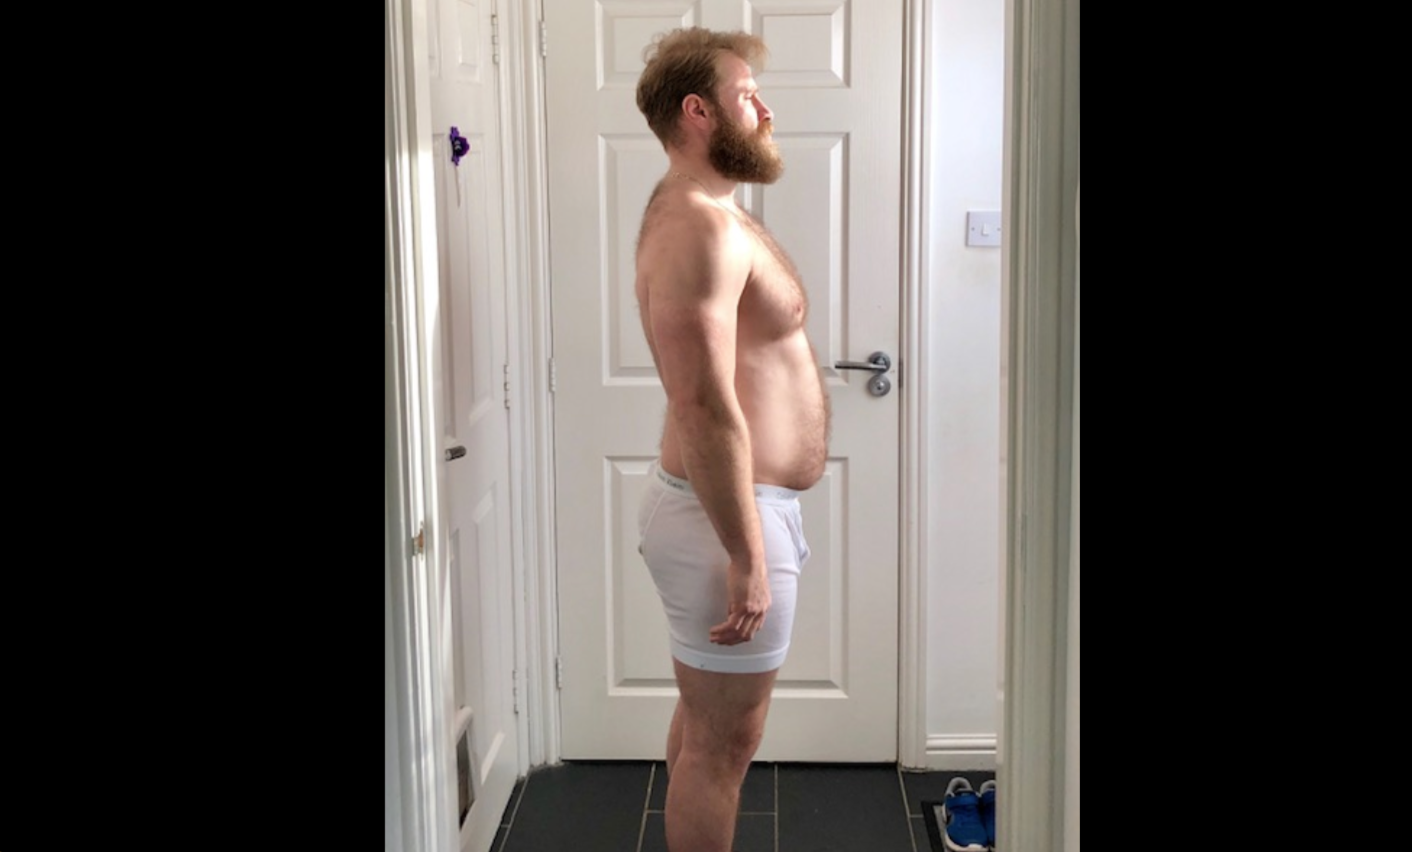 This Guy Lost 30 Pounds and Gained a Rock-Hard Six Pack